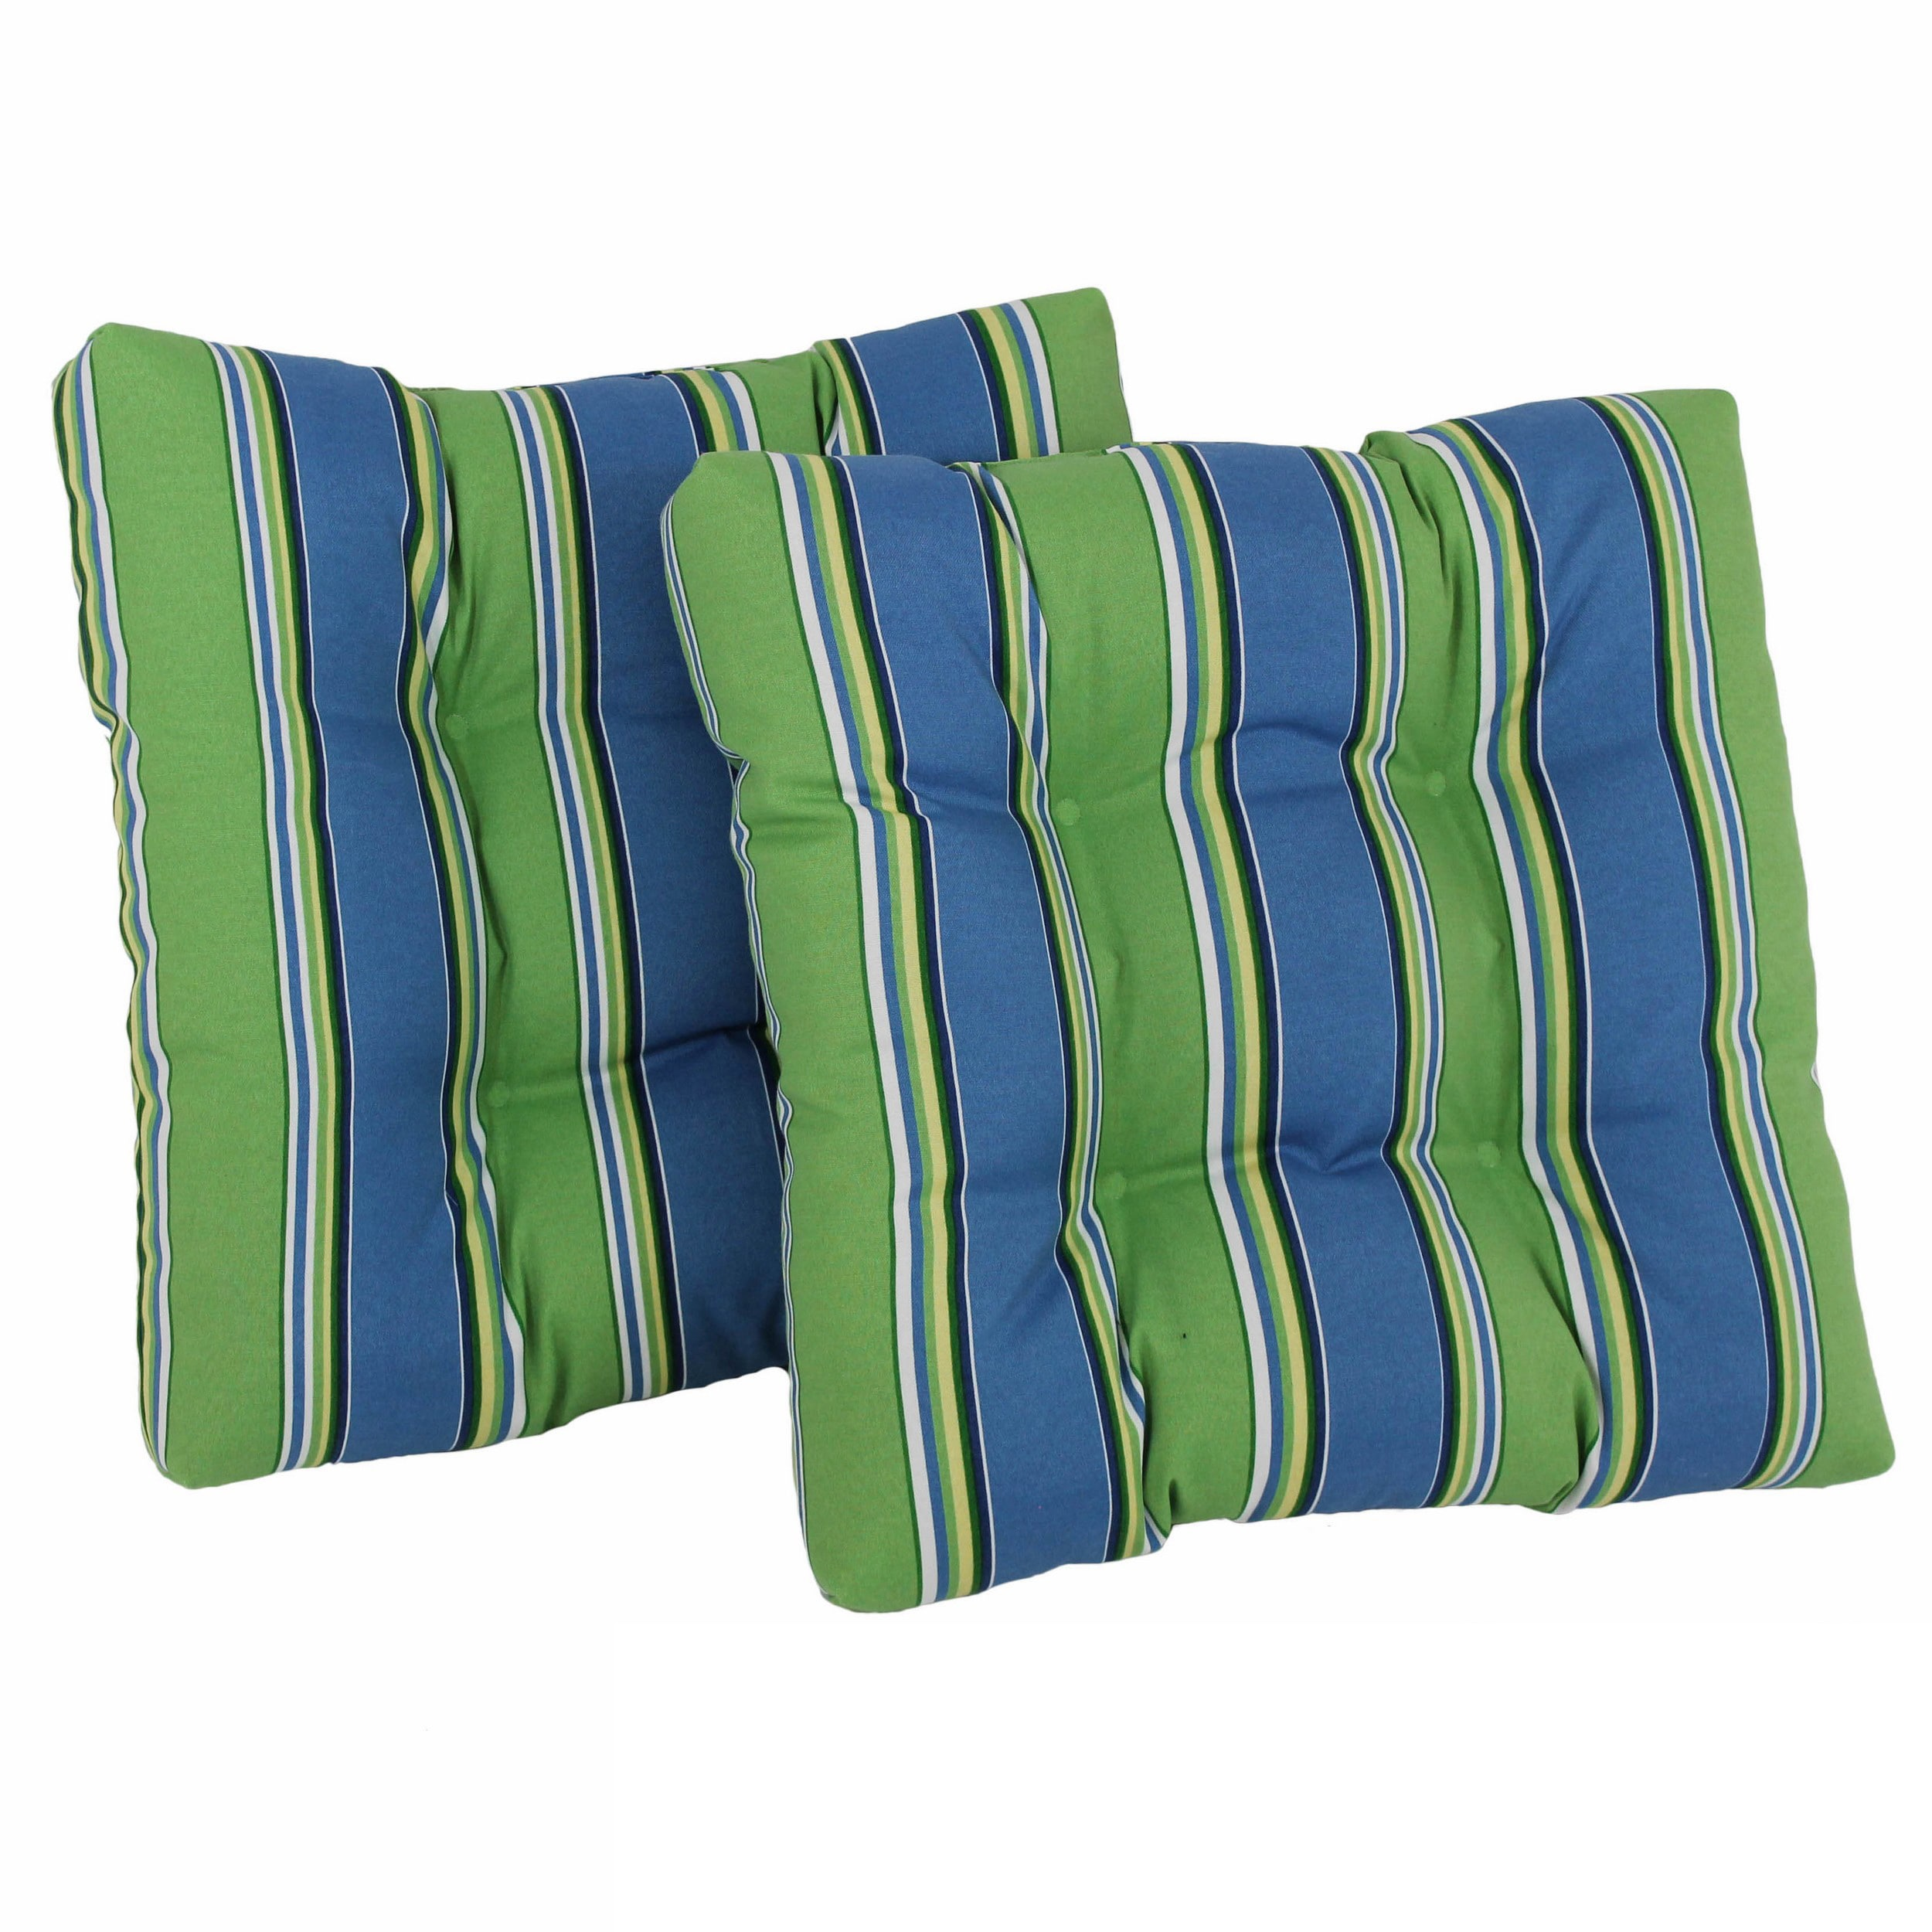 Blazing Needles  All-weather Square Outdoor Chair Cushions (Set of 2)